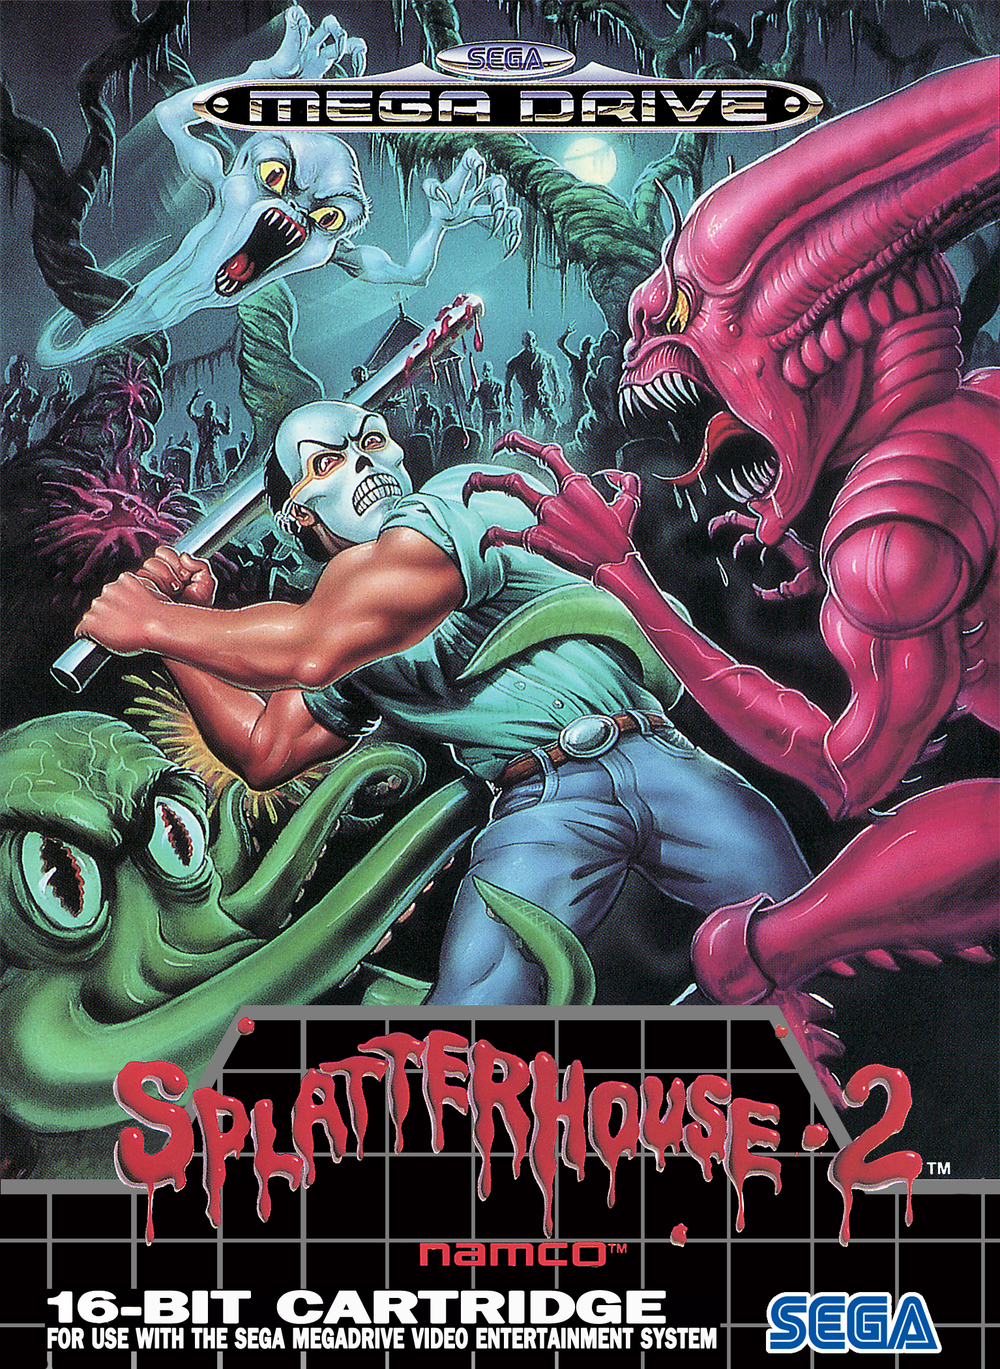 European box art for 2. Much more cartoony than the first one's promo art, but still suitably gruesome and chilling.